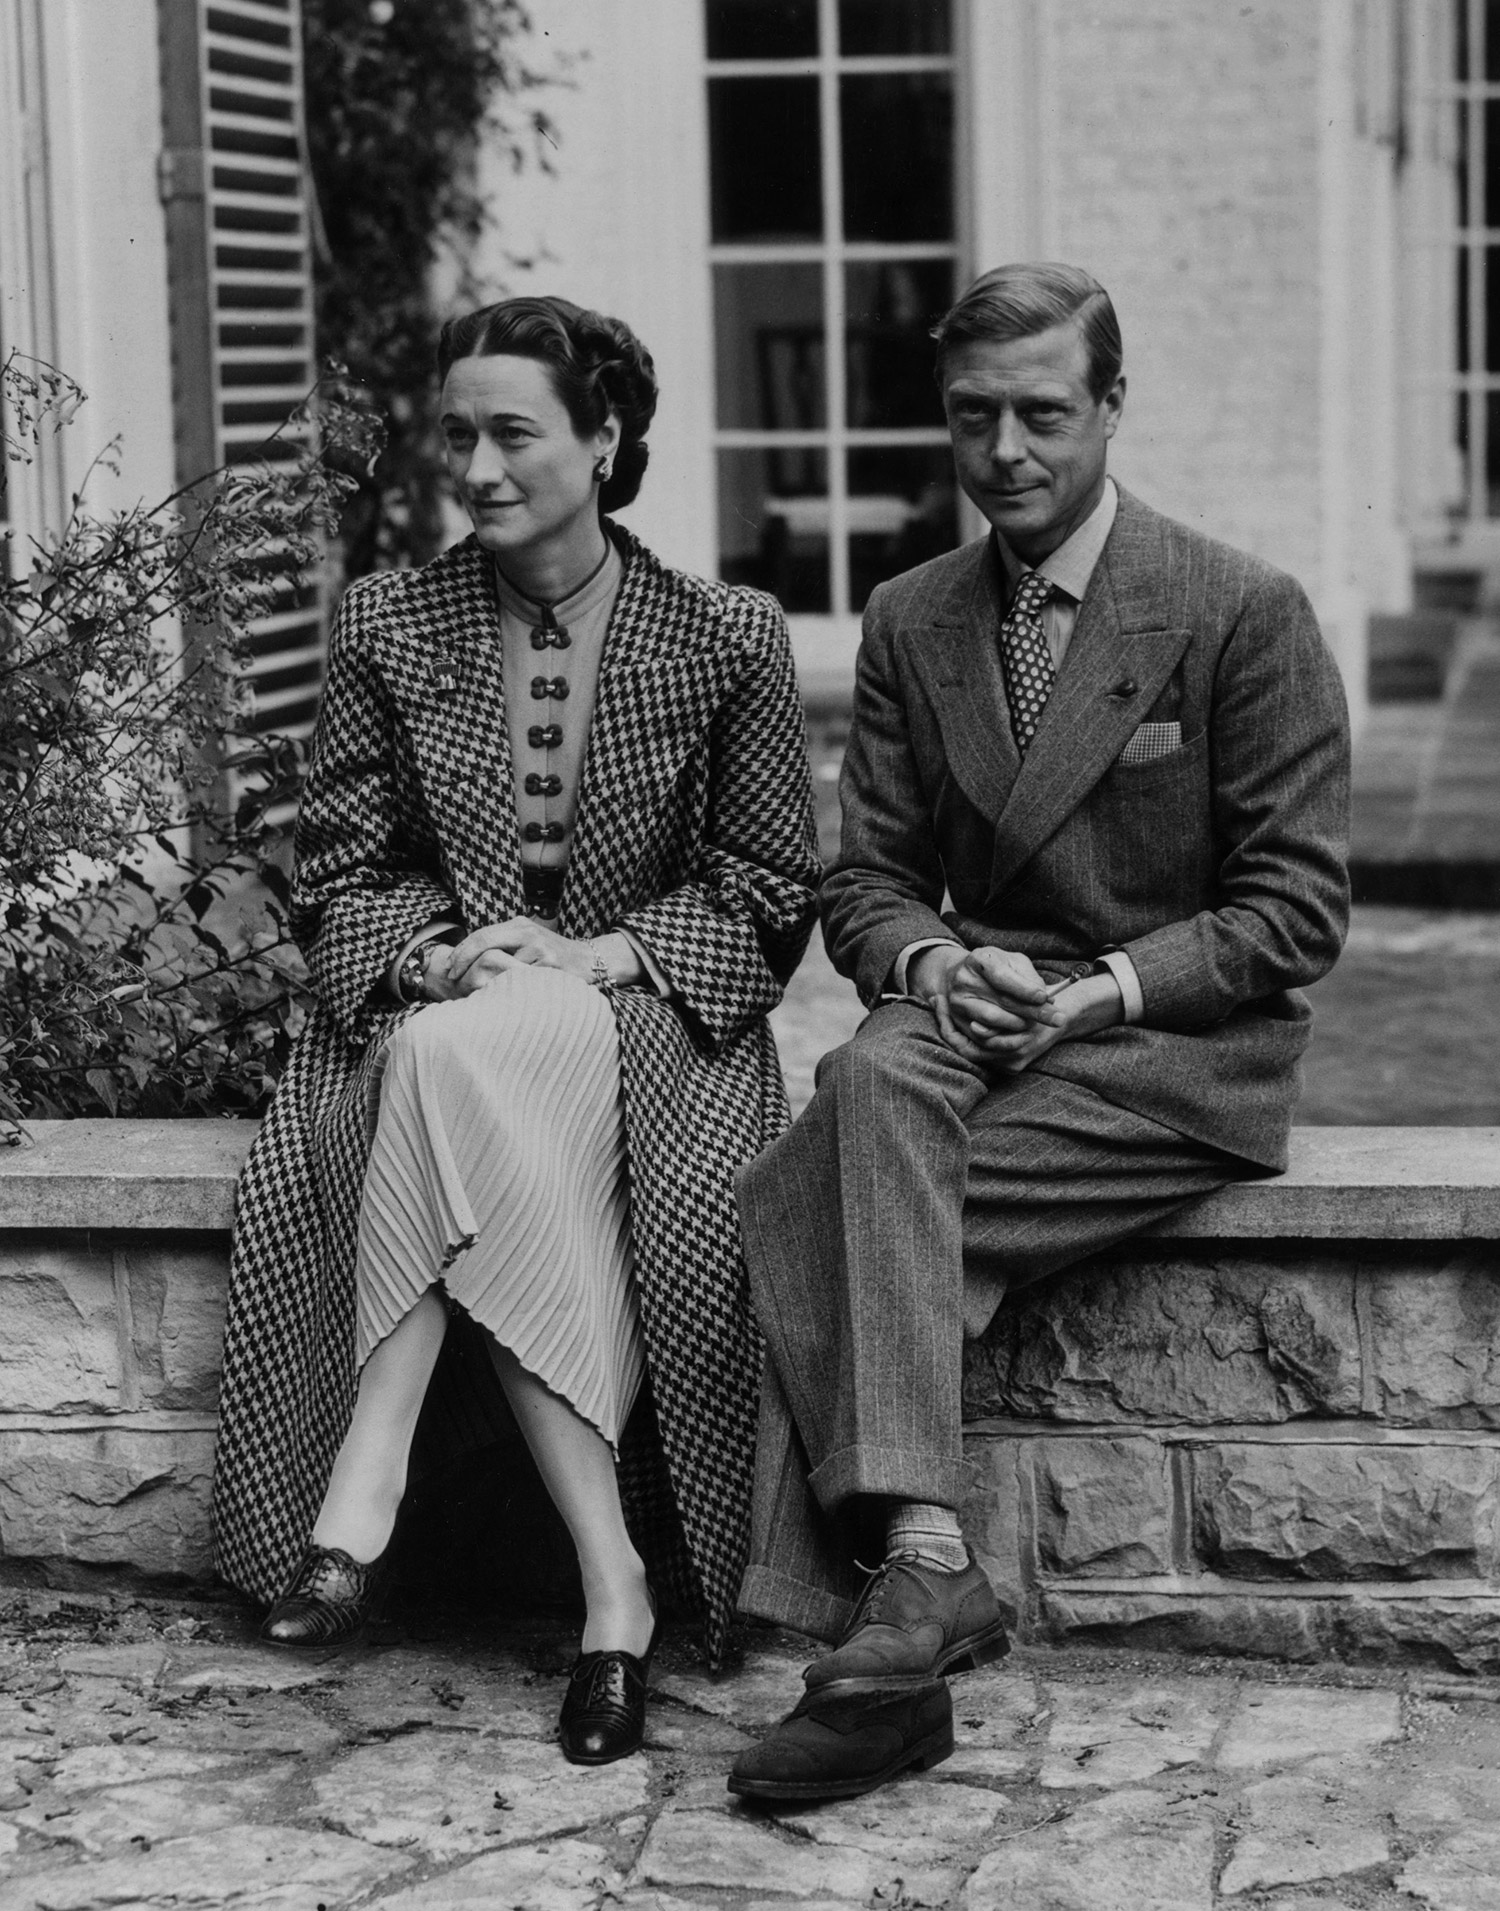 American socialite Wallis Simpson (Duchess of Windsor by marriage) and husband, the Duke of Windsor (the title granted him upon his abdicating the throne in order to marry the woman he loved).